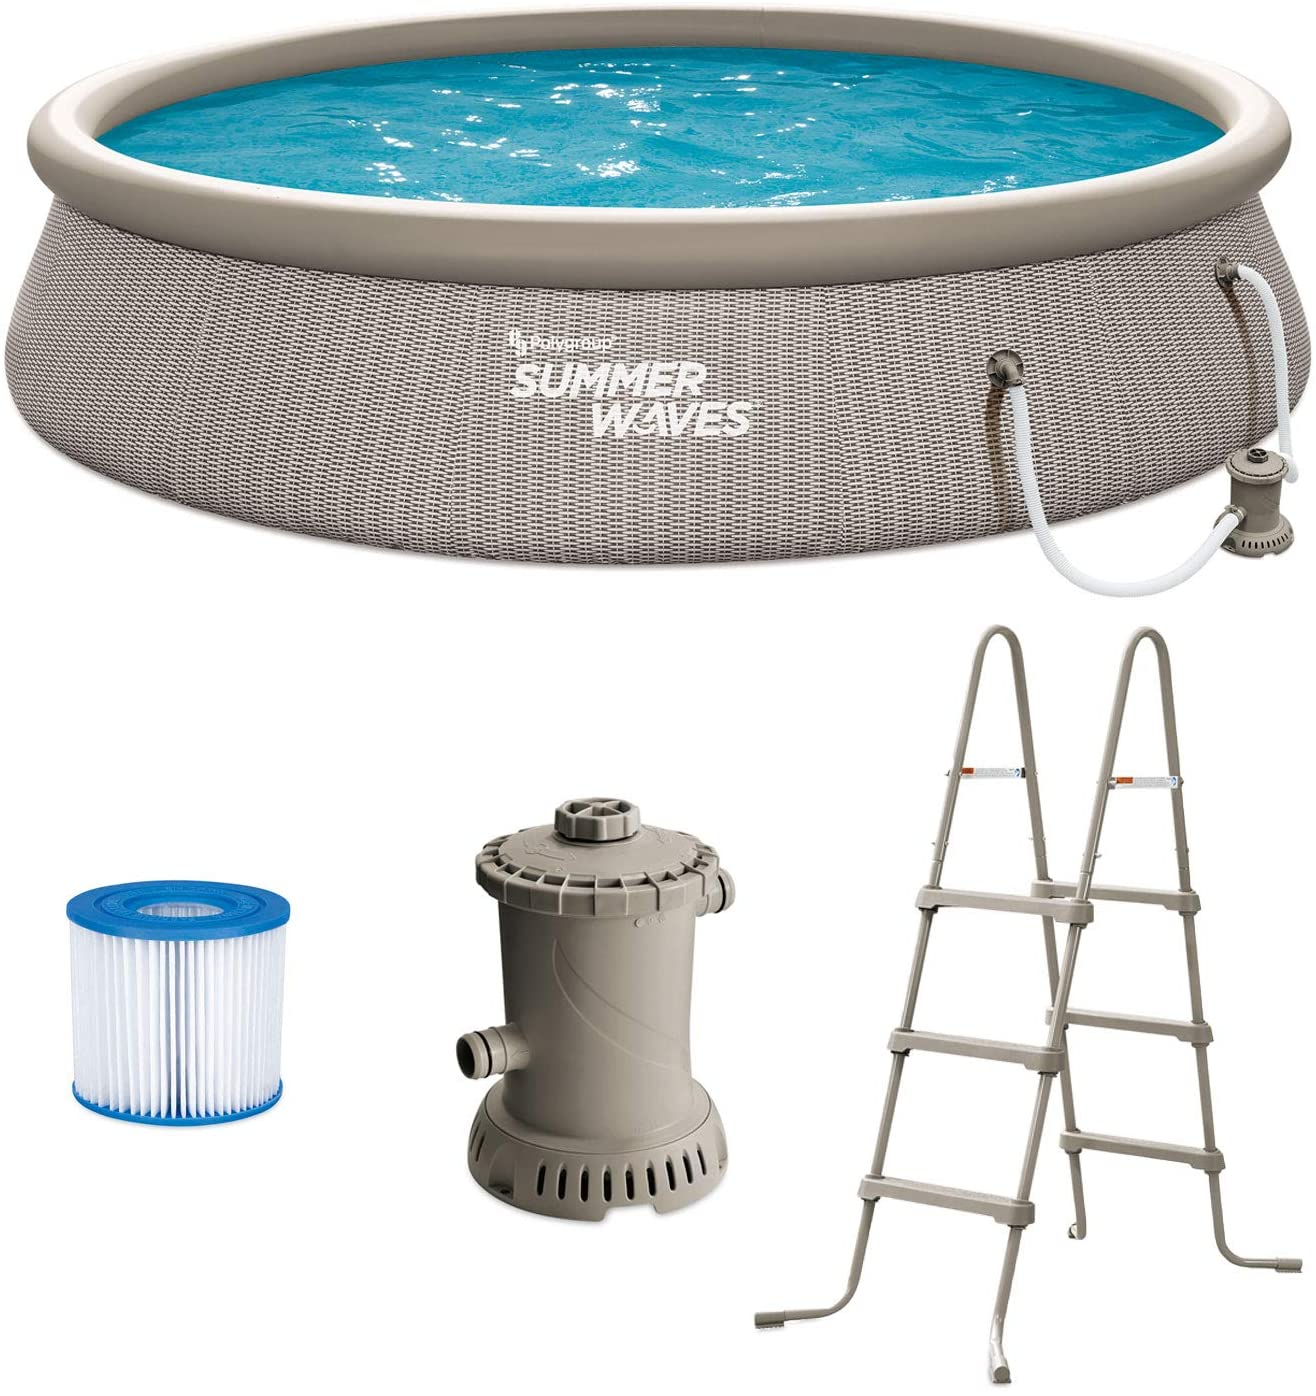 Summer Waves P1B01436E 14ft x 36in Round Quick Set Inflatable Ring Above Ground Swimming Pool